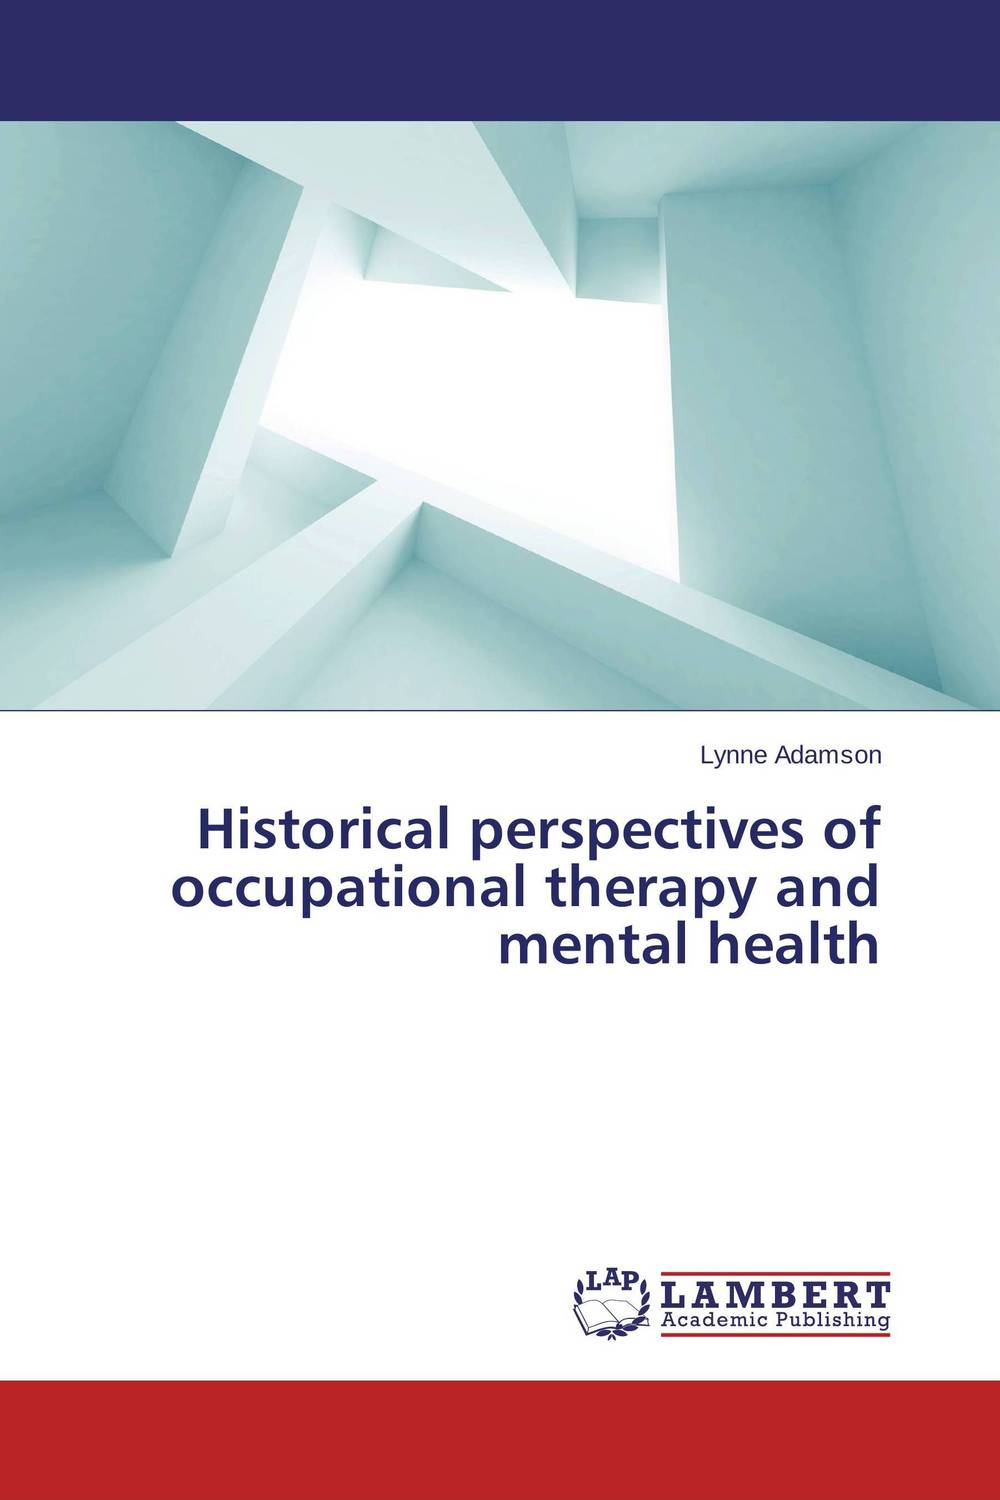 Historical perspectives of occupational therapy and mental health the role of evaluation as a mechanism for advancing principal practice